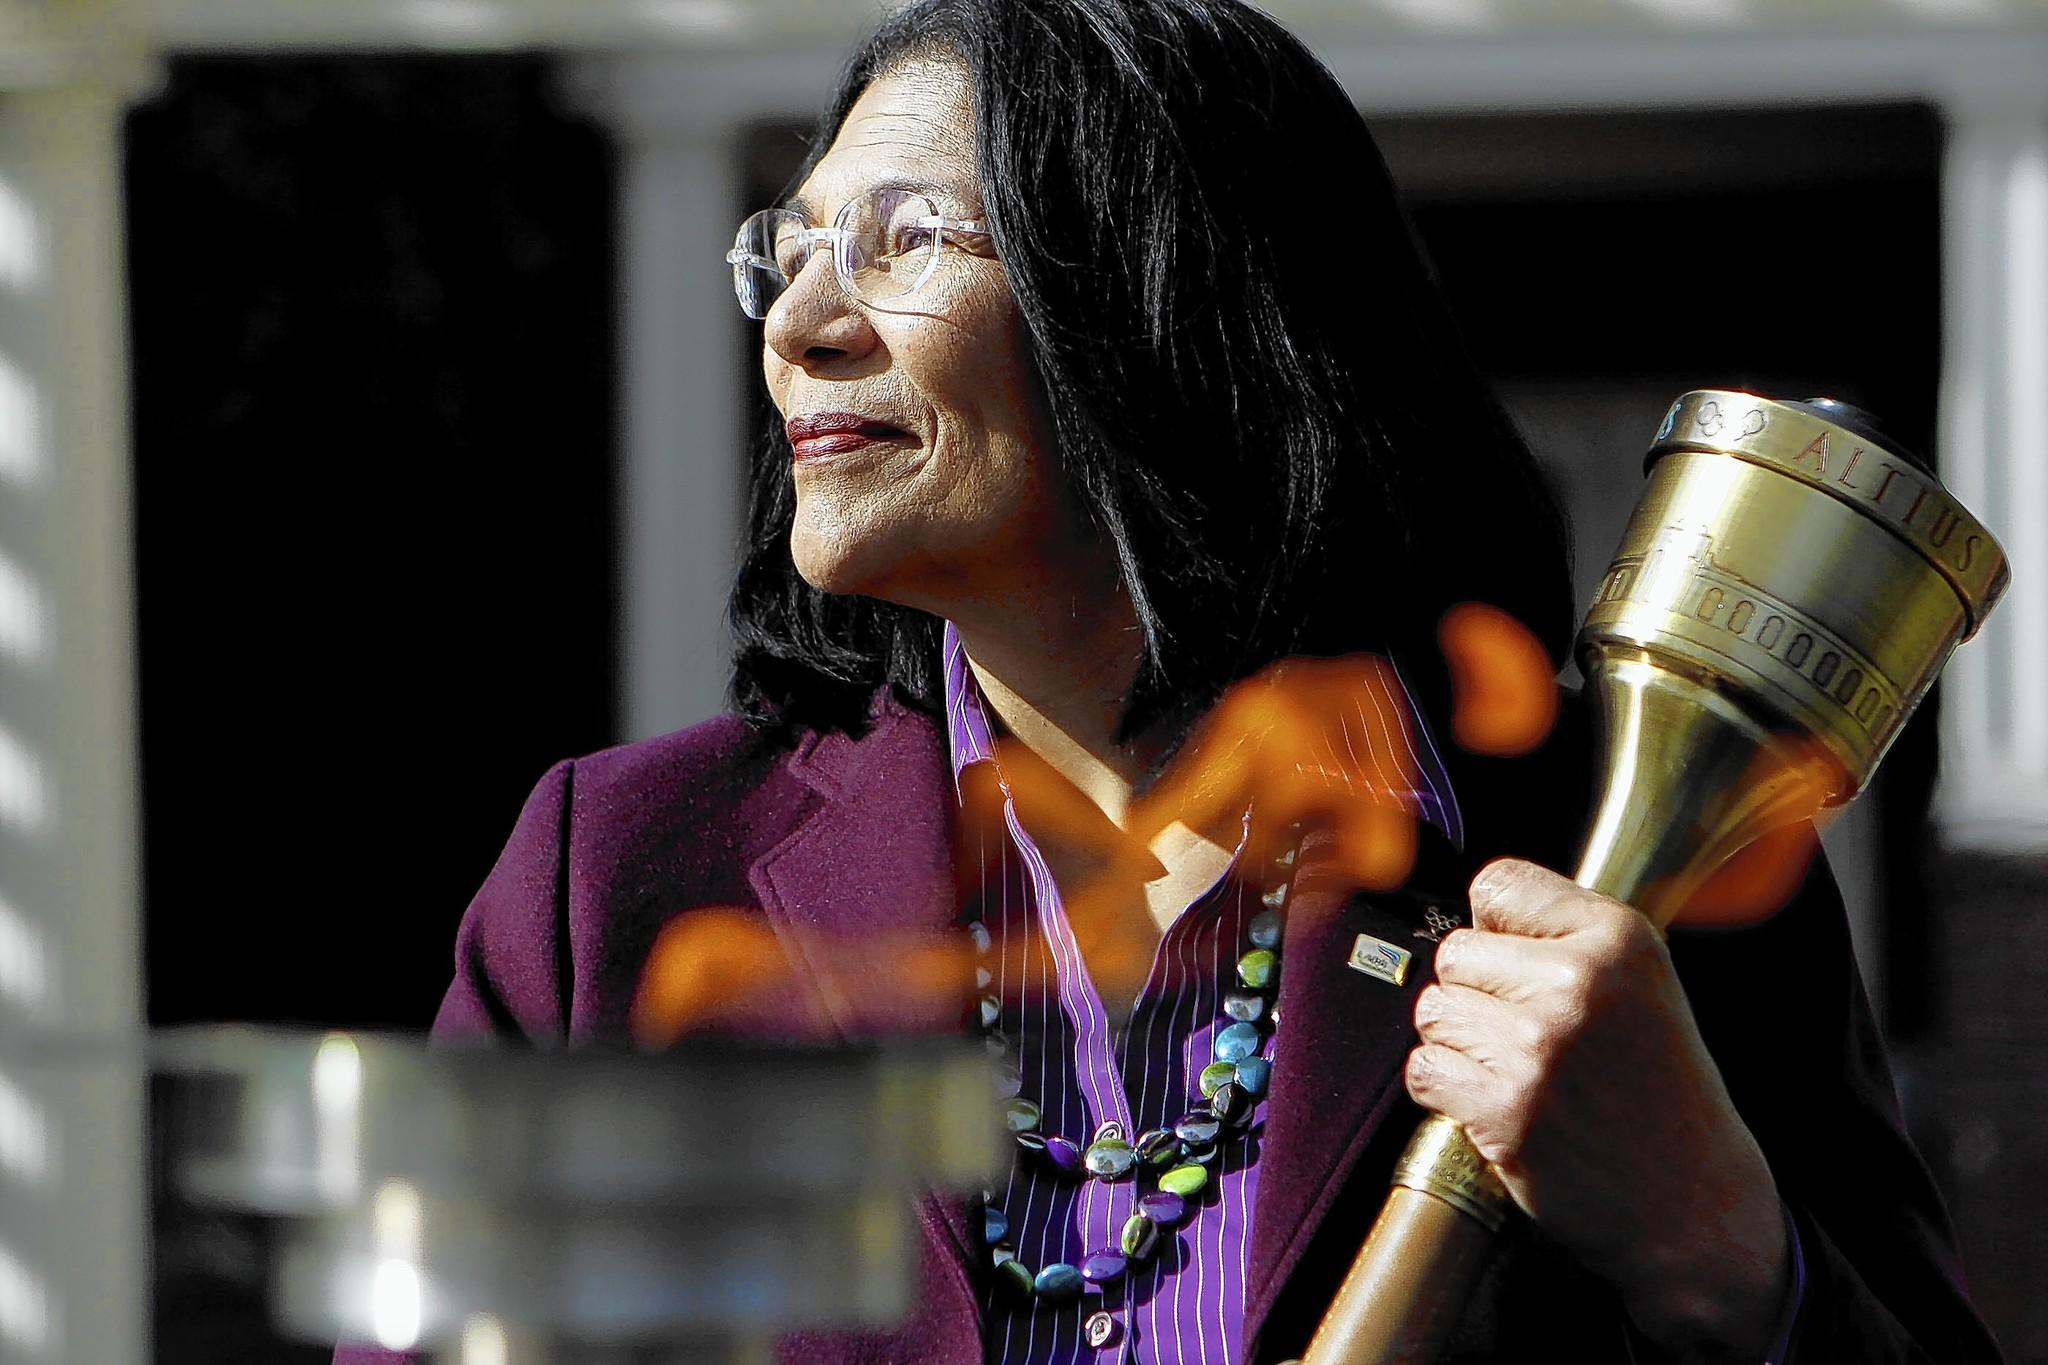 """We overlook it as something children do. As adults, we view it as entertainment. But there is an intrinsic value to sport, not only in teaching teamwork,"" says Anita L. DeFrantz, 61, president and a director of the LA84 Foundation. Above, DeFrantz holds an Olympic torch at the foundation in January."